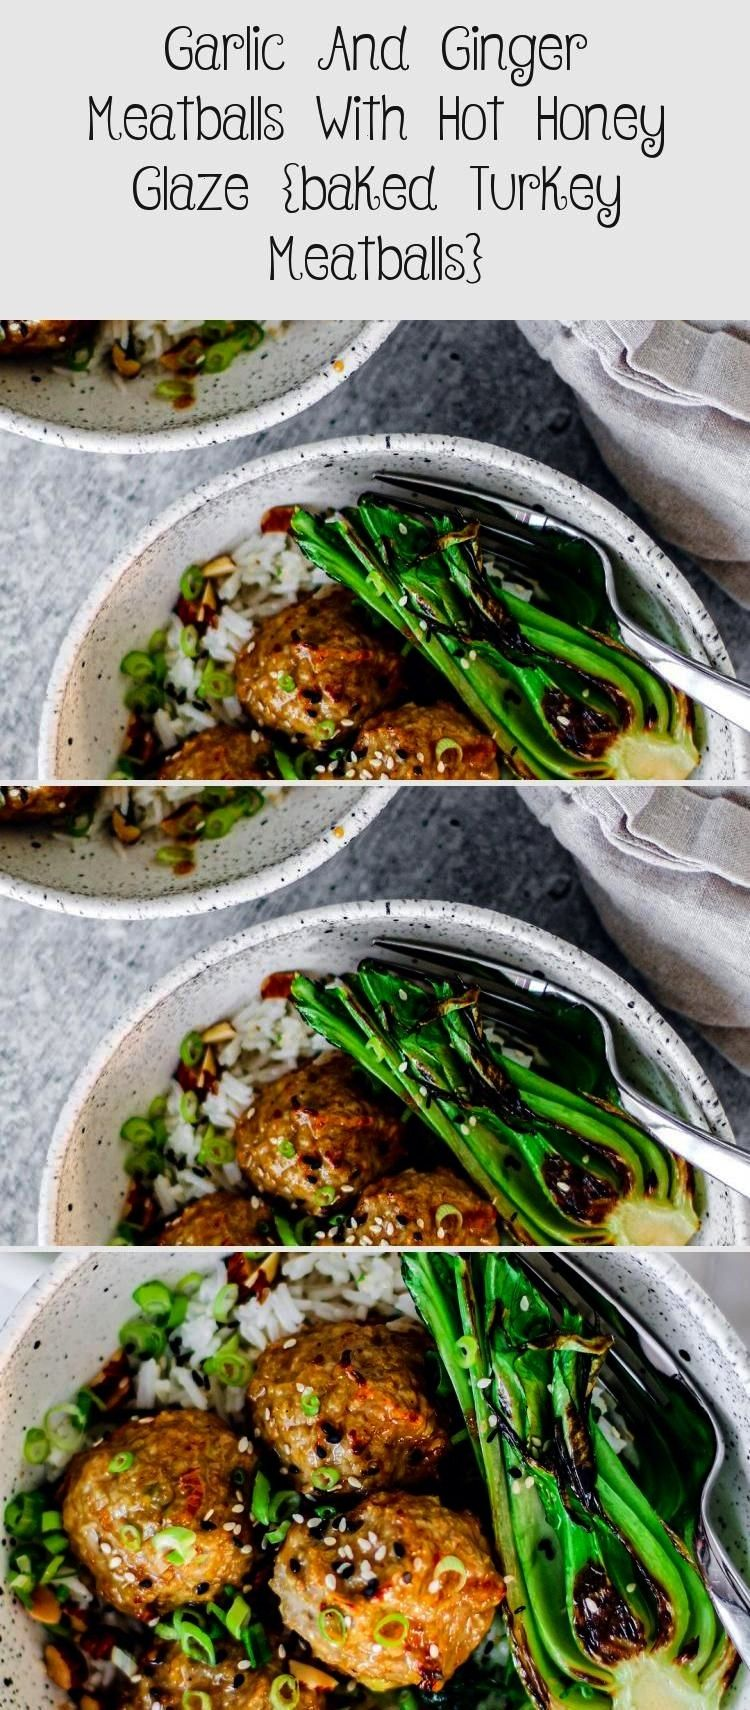 and Ginger Meatballs with Hot Honey Glaze {Baked Turkey Meatballs}Garlic and Ginger Meatballs with